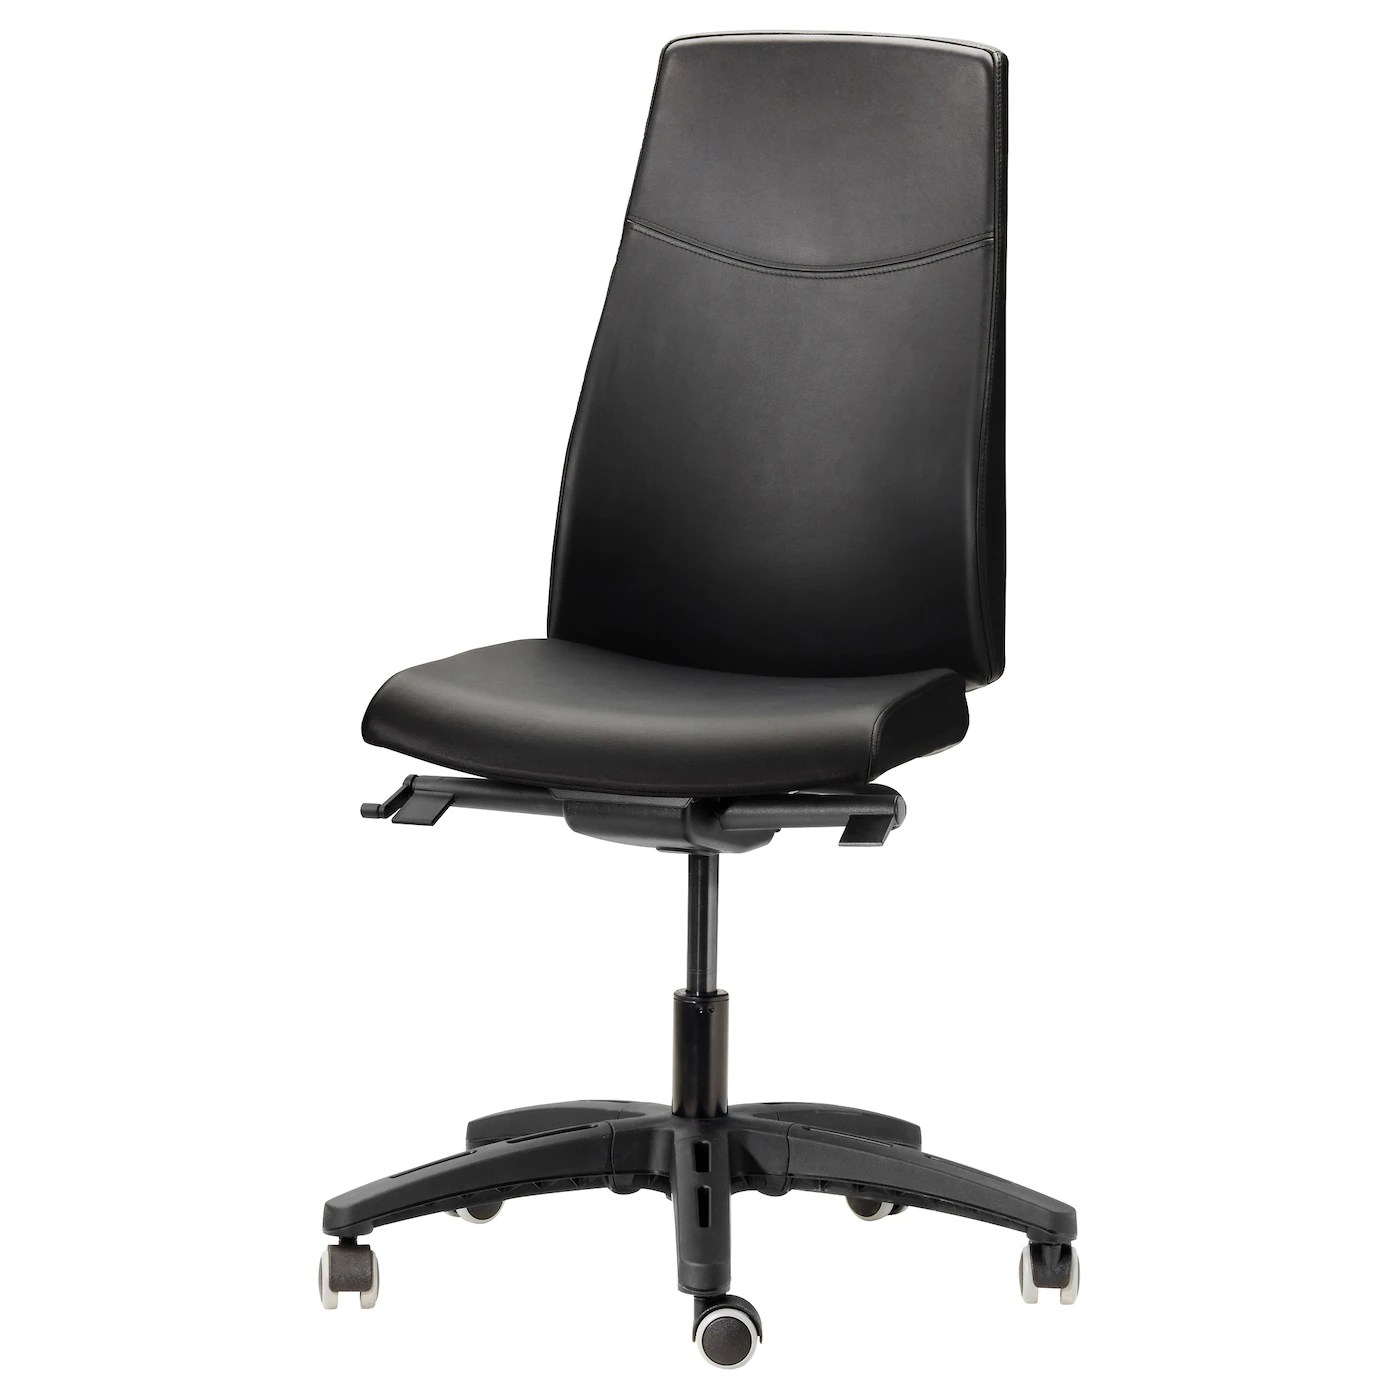 Black Swivel Chair Volmar Swivel Chair Mjuk Black Ikea